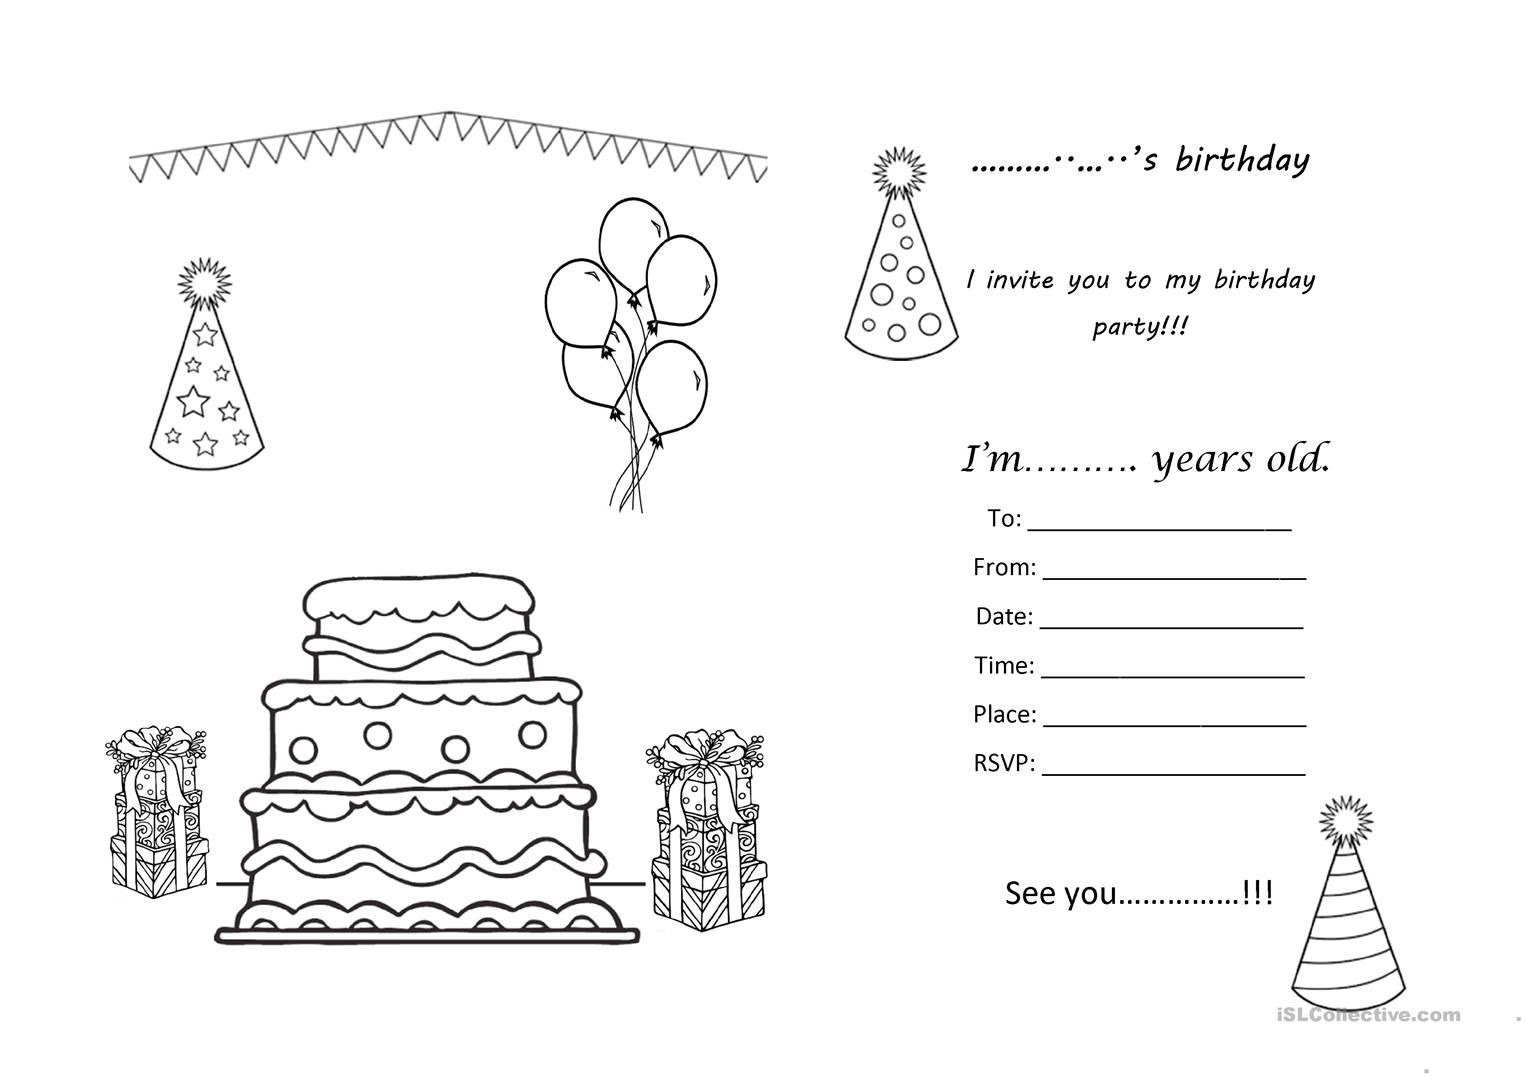 Birthday Party Invitation Worksheet